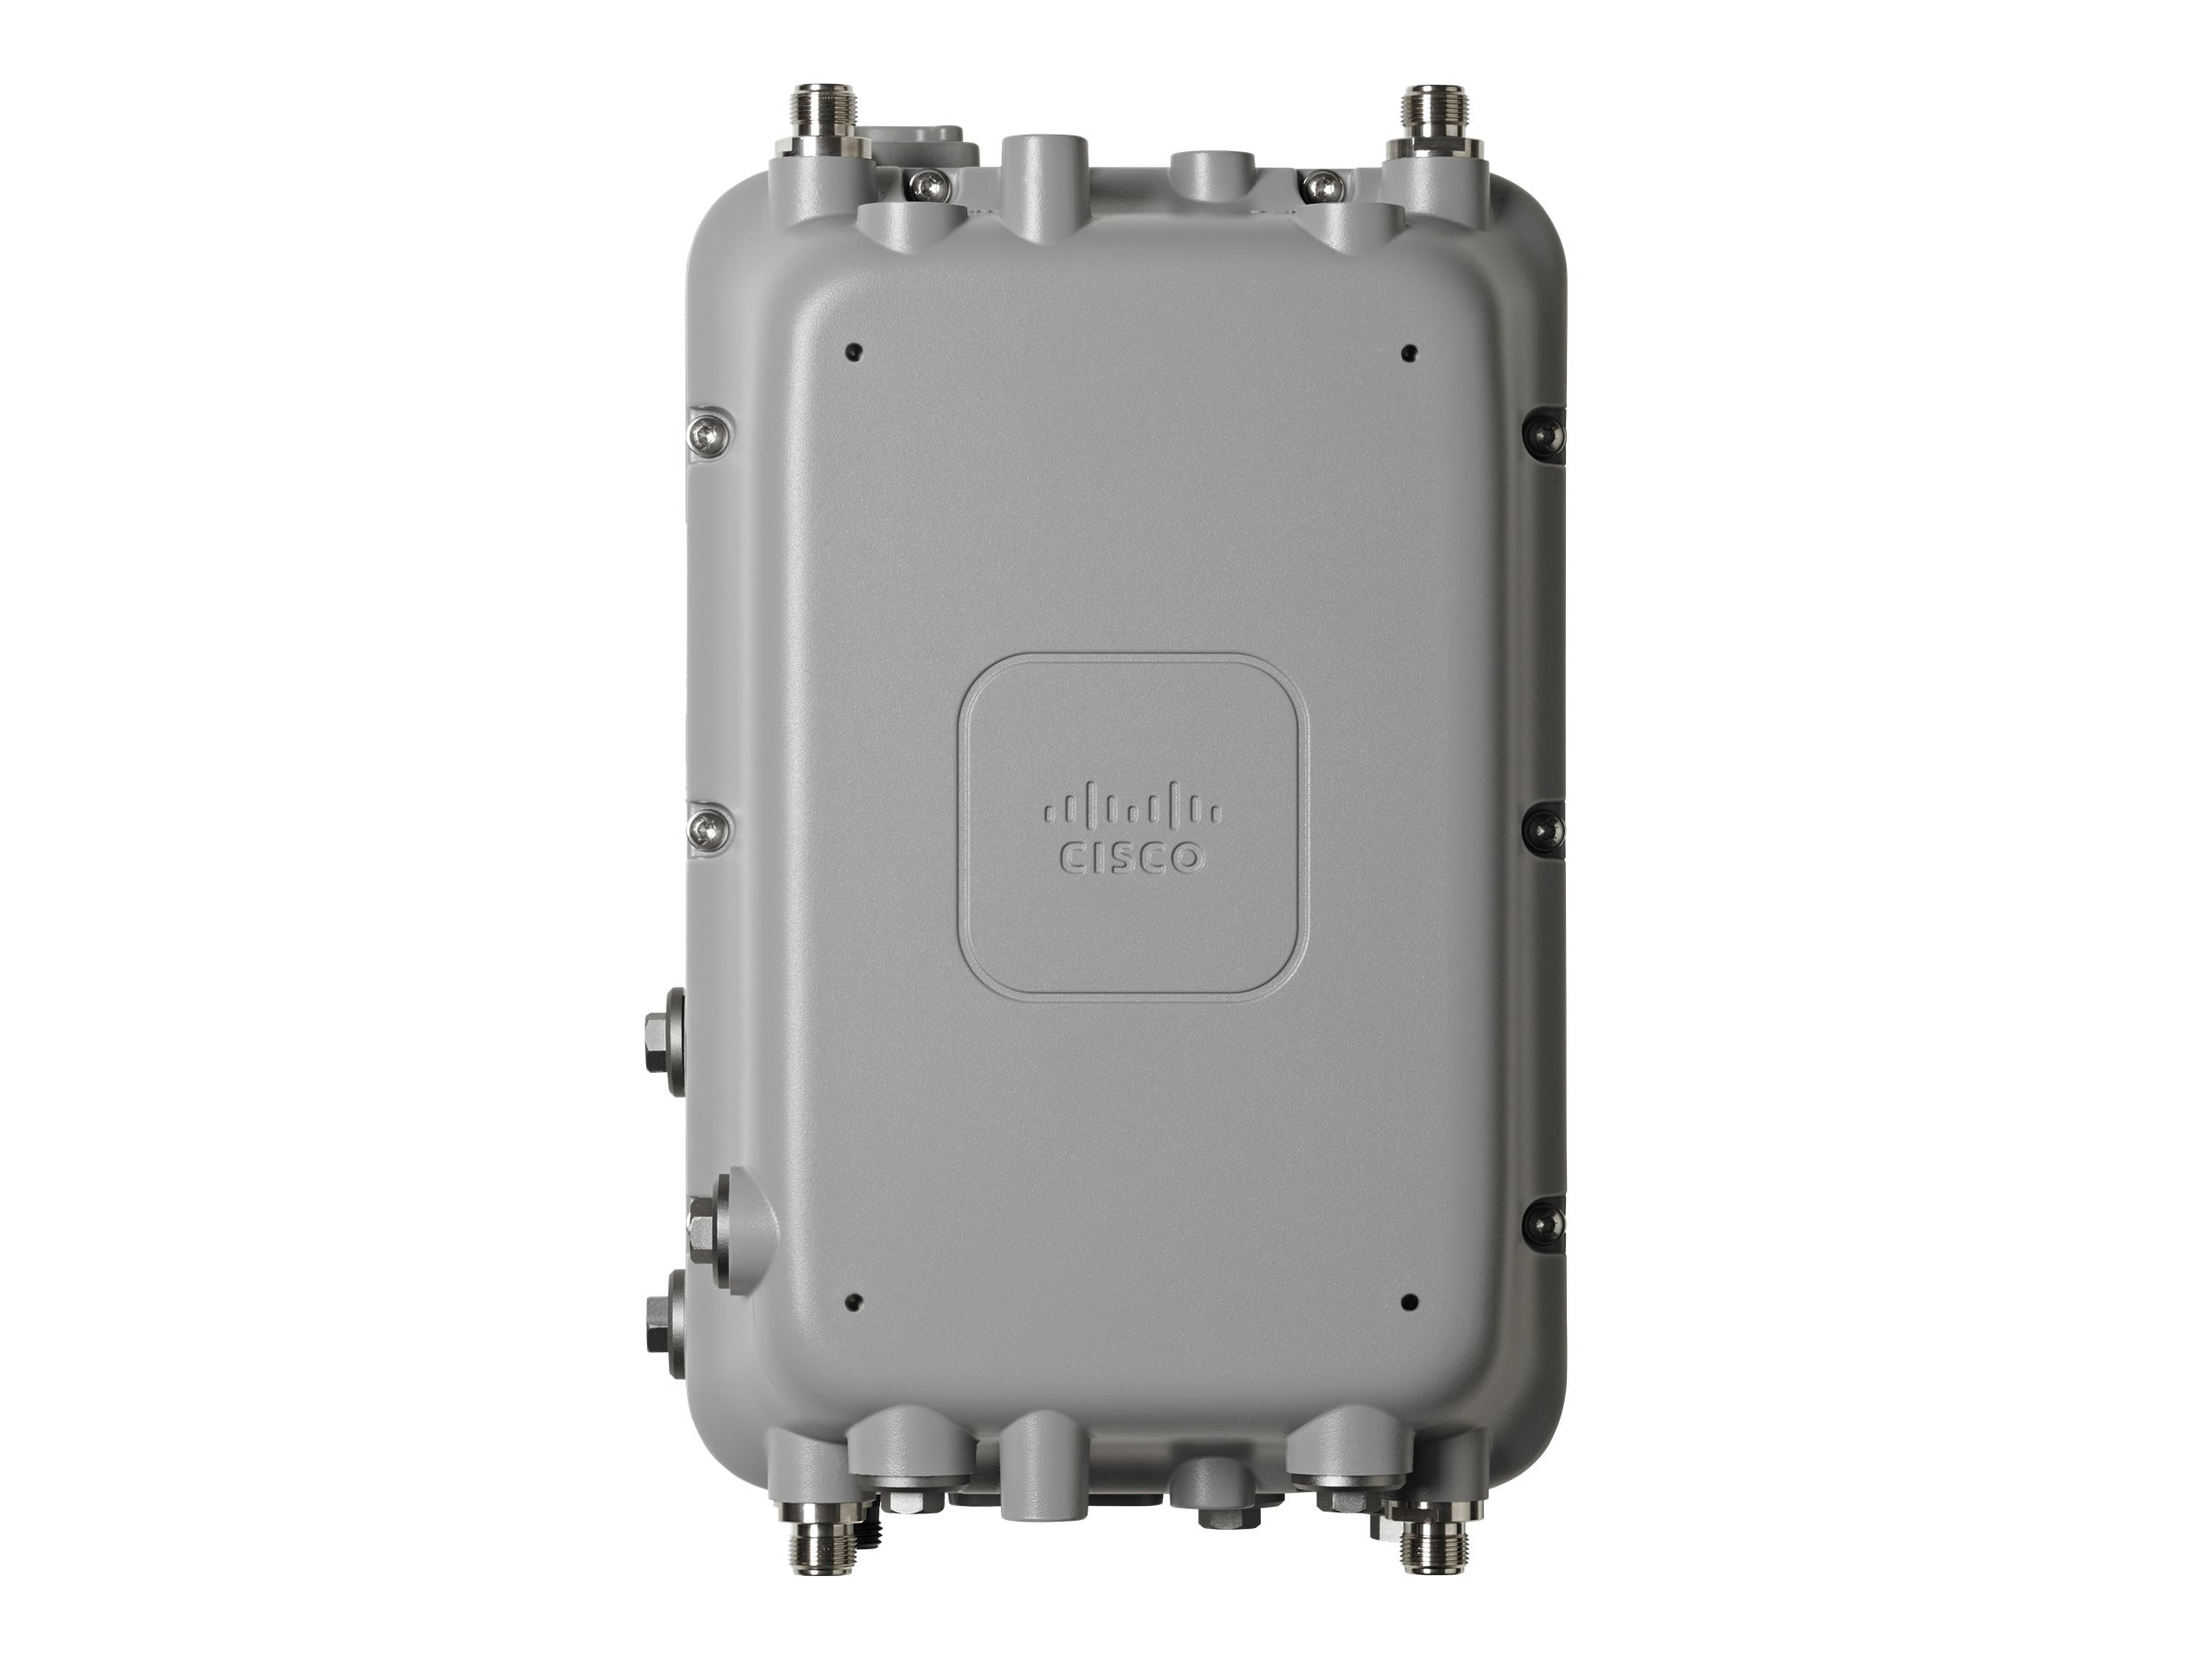 Cisco AIR-AP1572EAC-Z-K9 Image 2